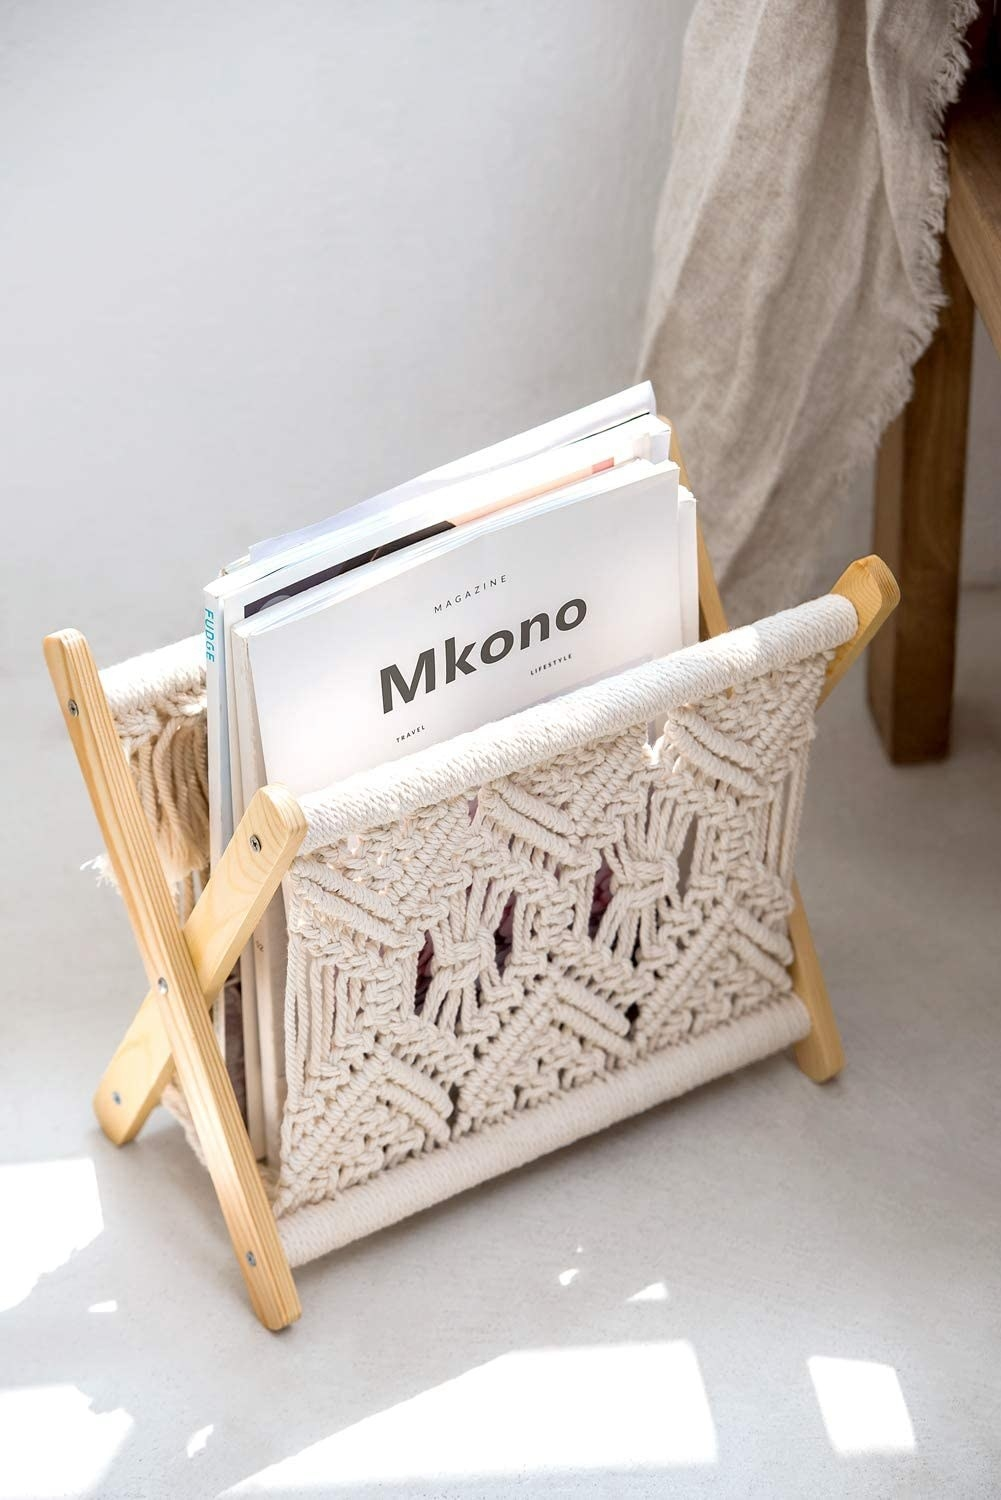 Macrame holder with natural wood legs